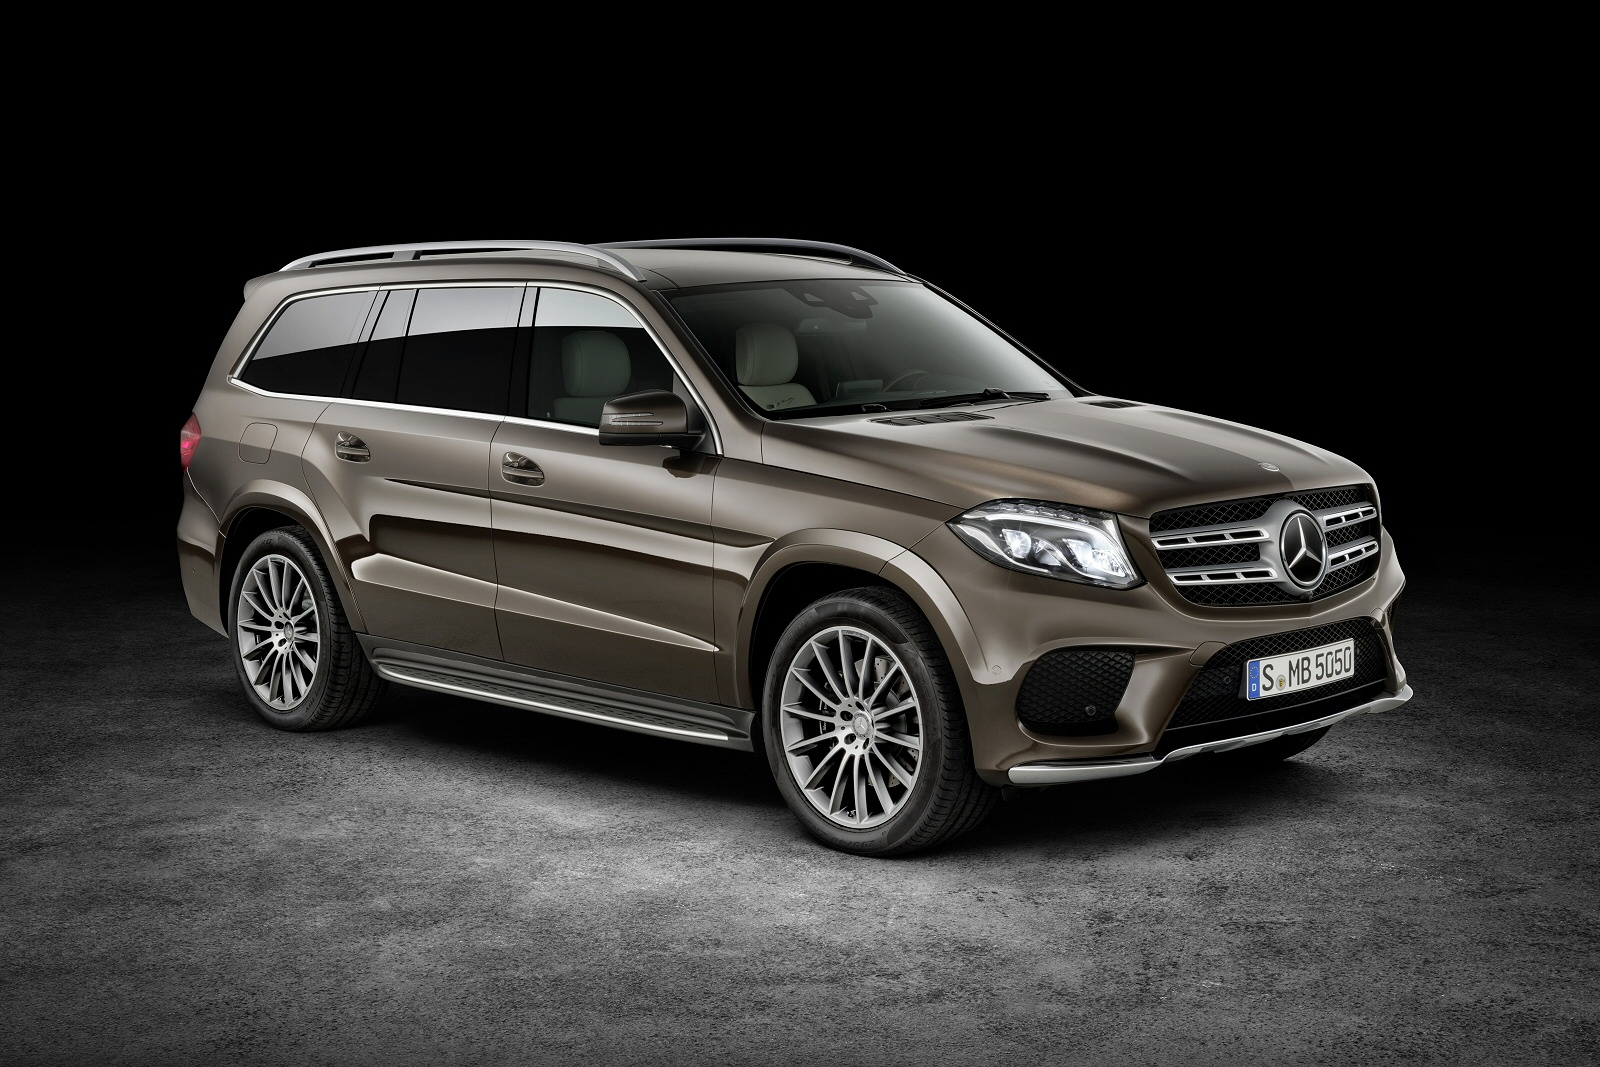 Mercedes Benz GLS Request brochures of our ranges by simply providing us with your preferred contact method